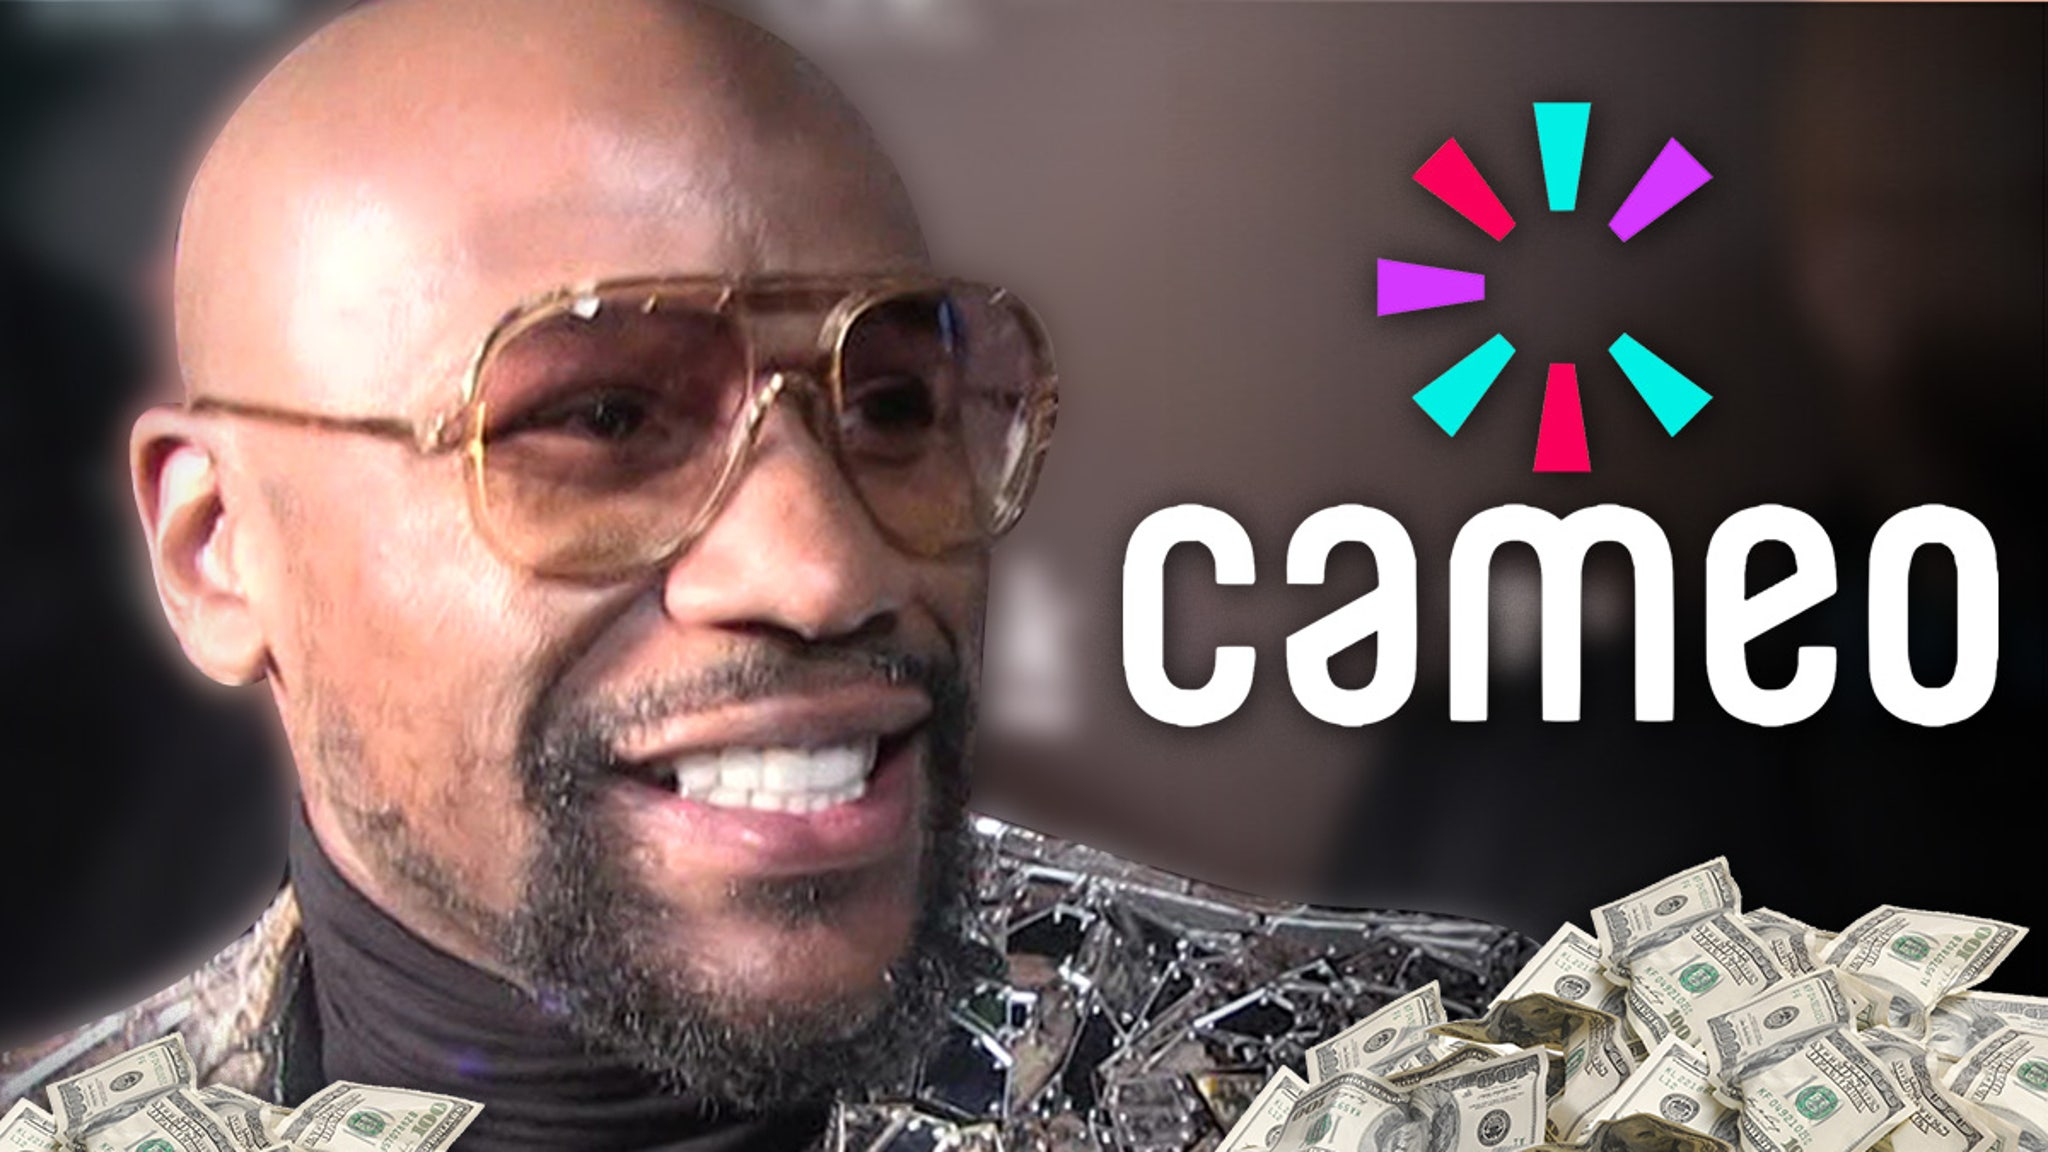 Floyd Mayweather Charging $999 For Cameo Vids ... 'Most Expensive Celeb' On Site